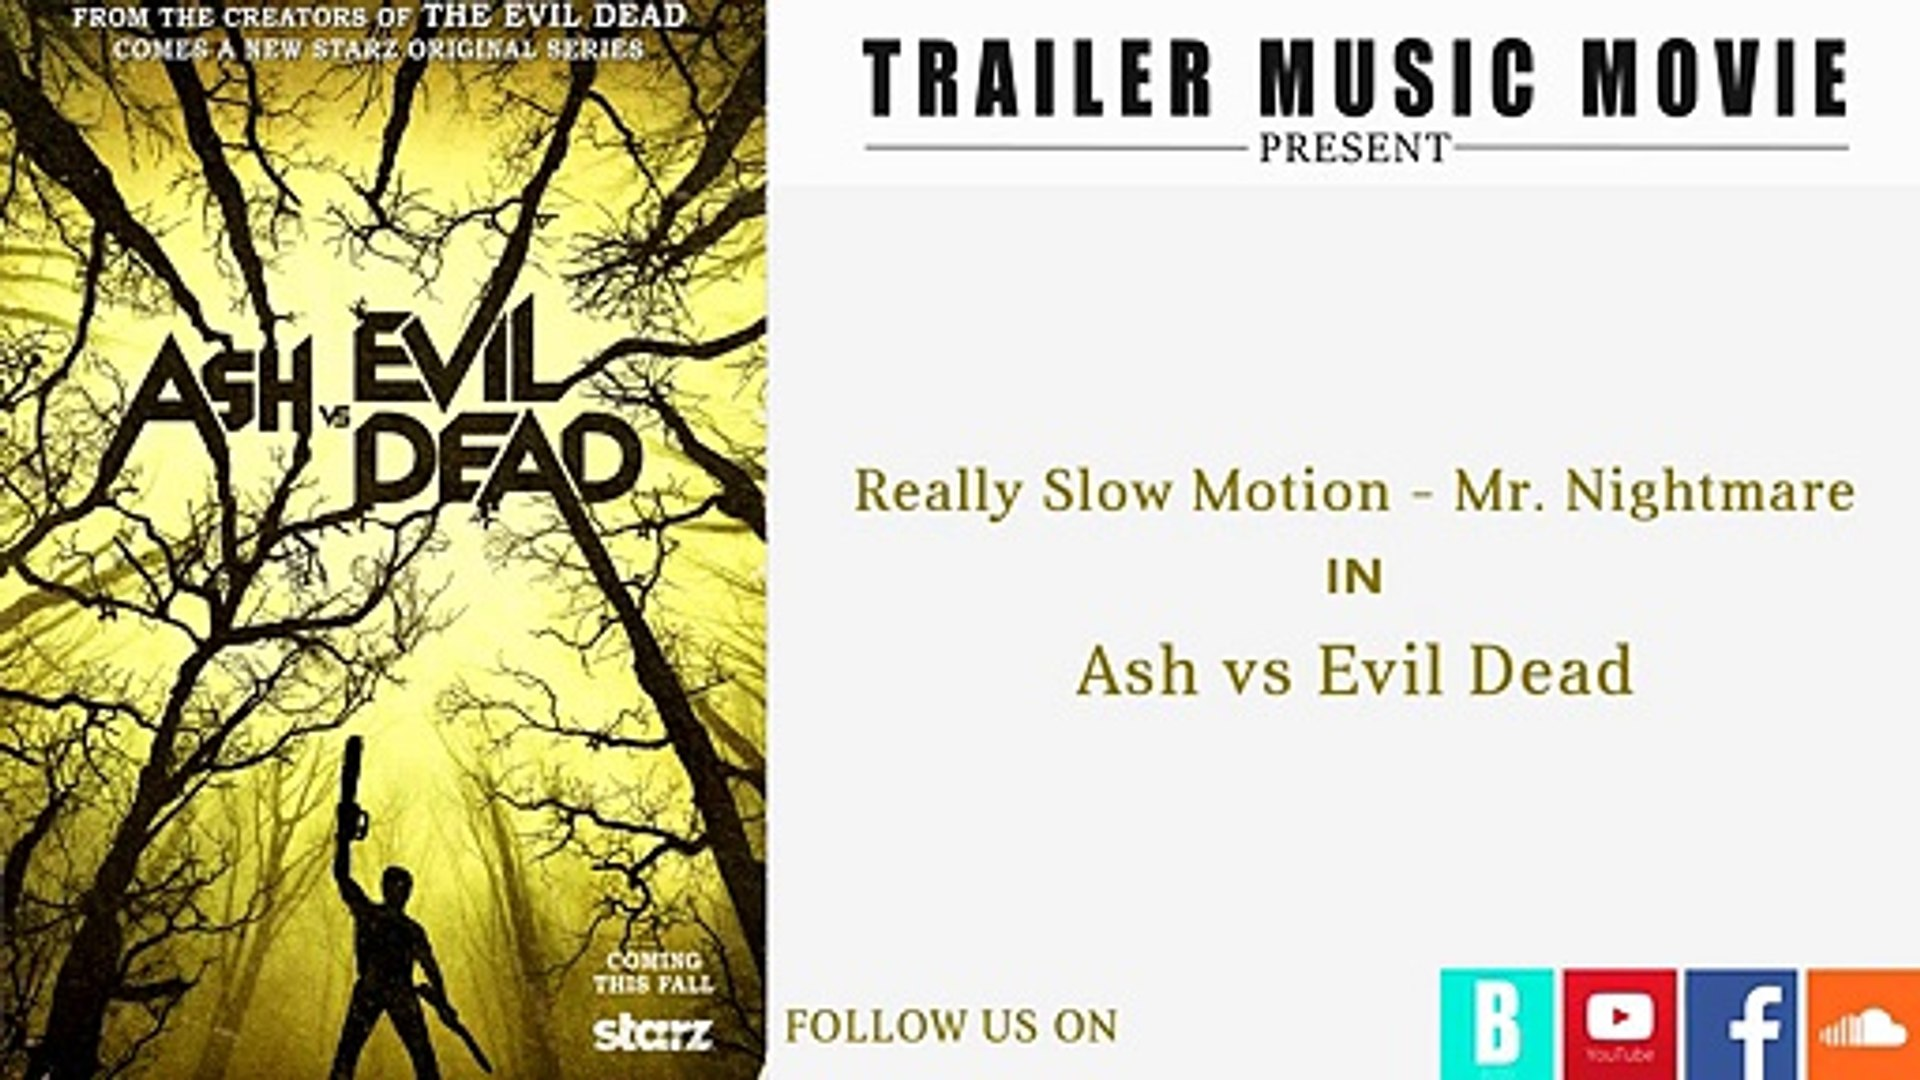 Ash Vs Evil Dead Trailer Music Really Slow Motion Mr Nightmare Video Dailymotion If you're in search of the best the nightmare before christmas wallpaper, you've come to the right place. dailymotion